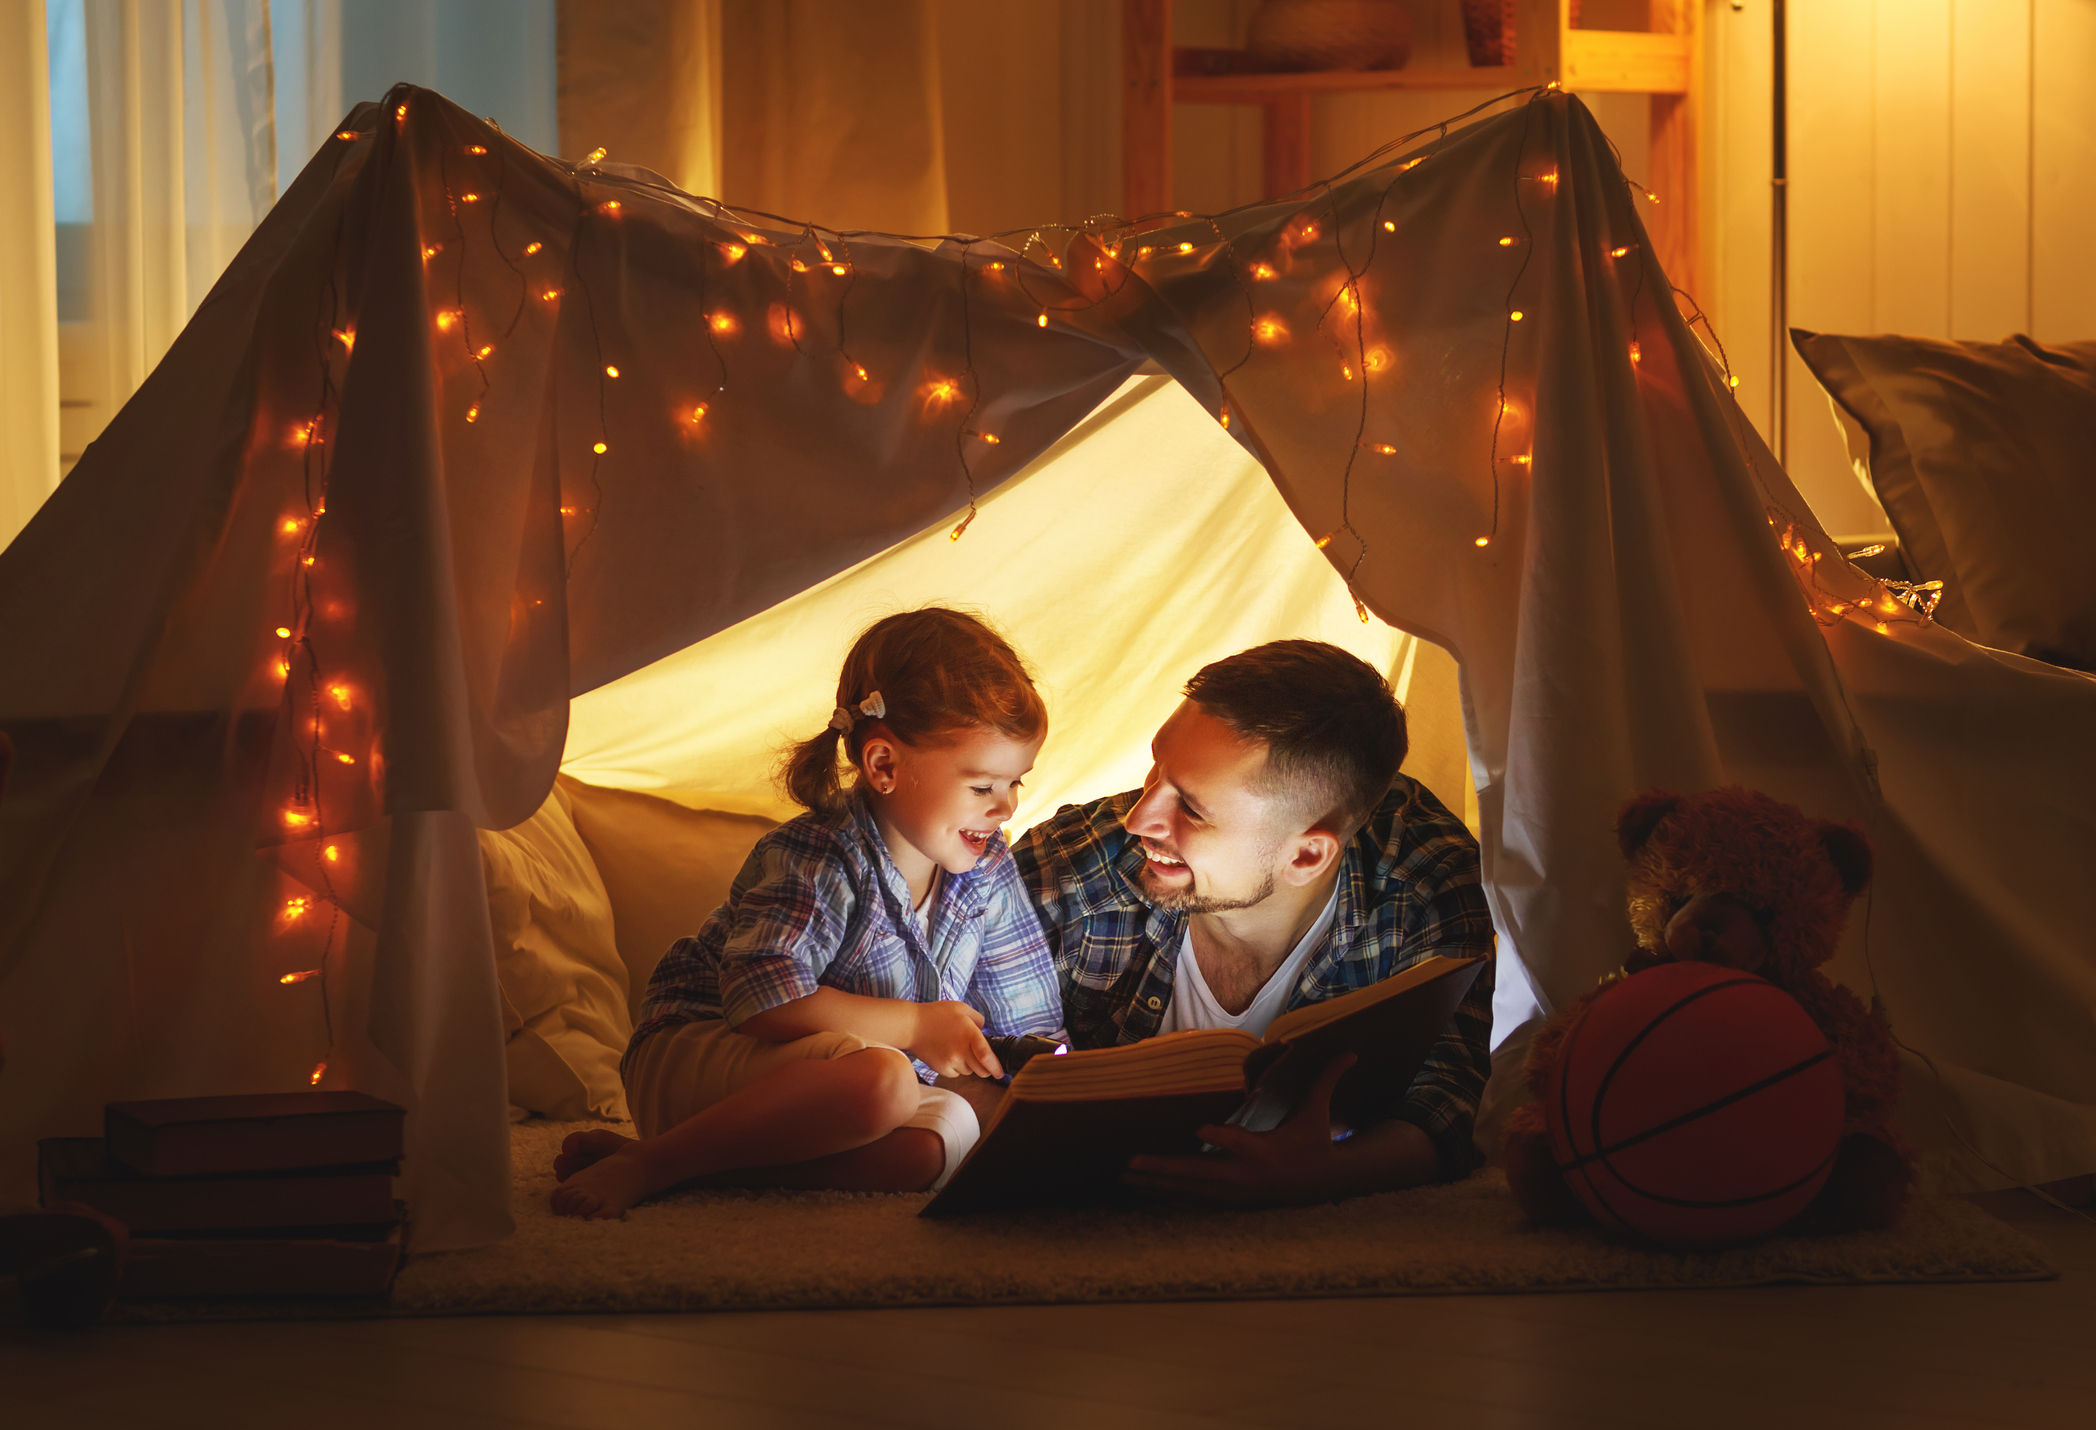 Father and daughter reading a book in an indoor tent